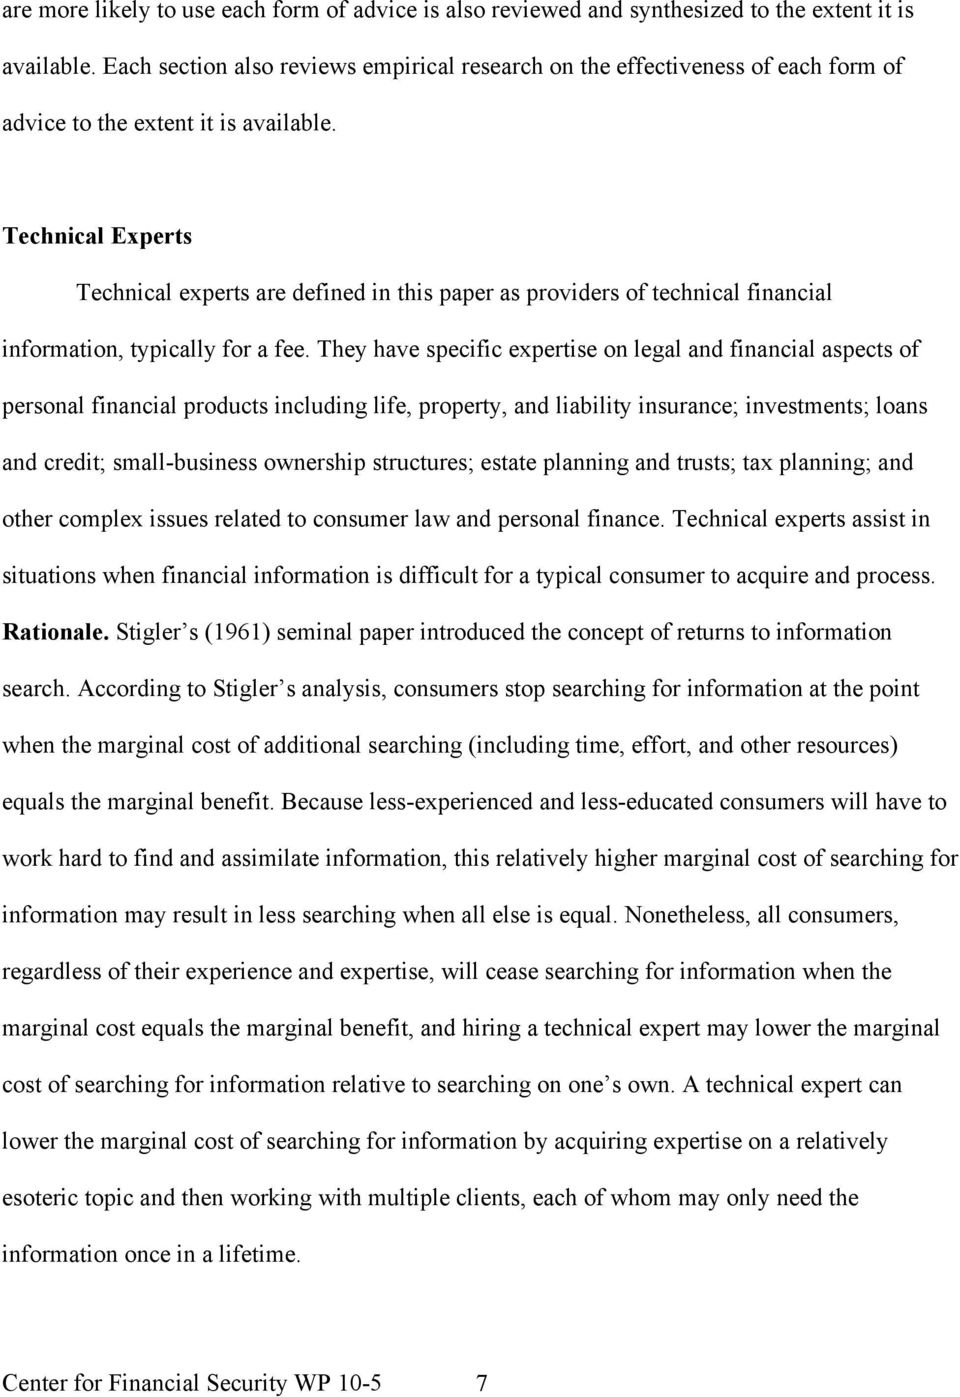 Technical Experts Technical experts are defined in this paper as providers of technical financial information, typically for a fee.